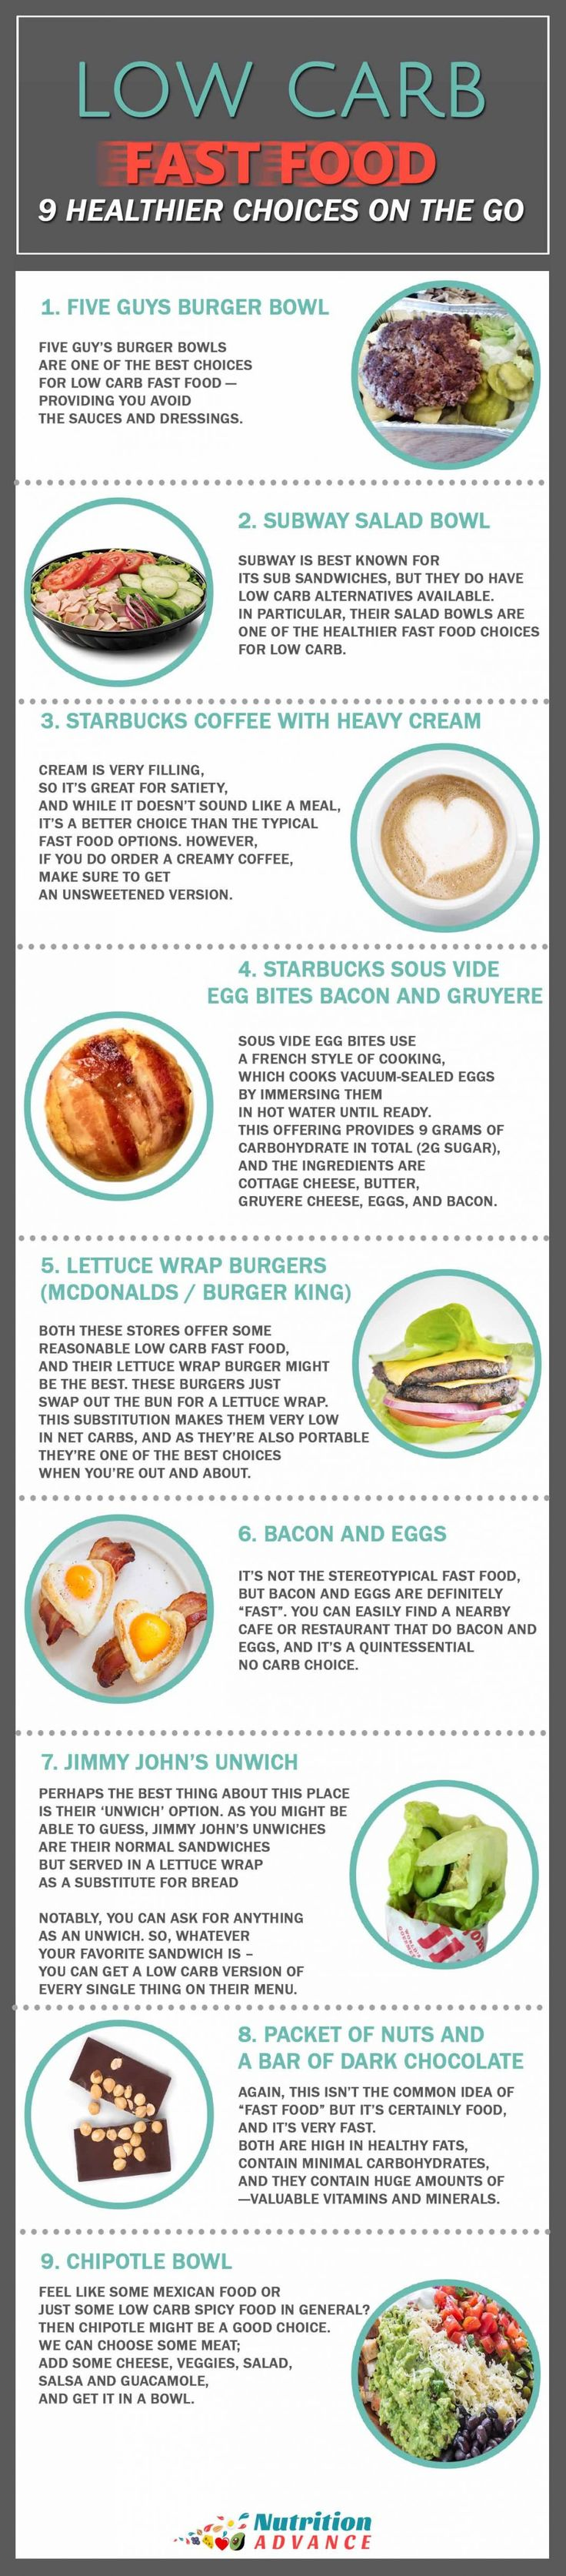 Infographic showing some great low carb fast food choices